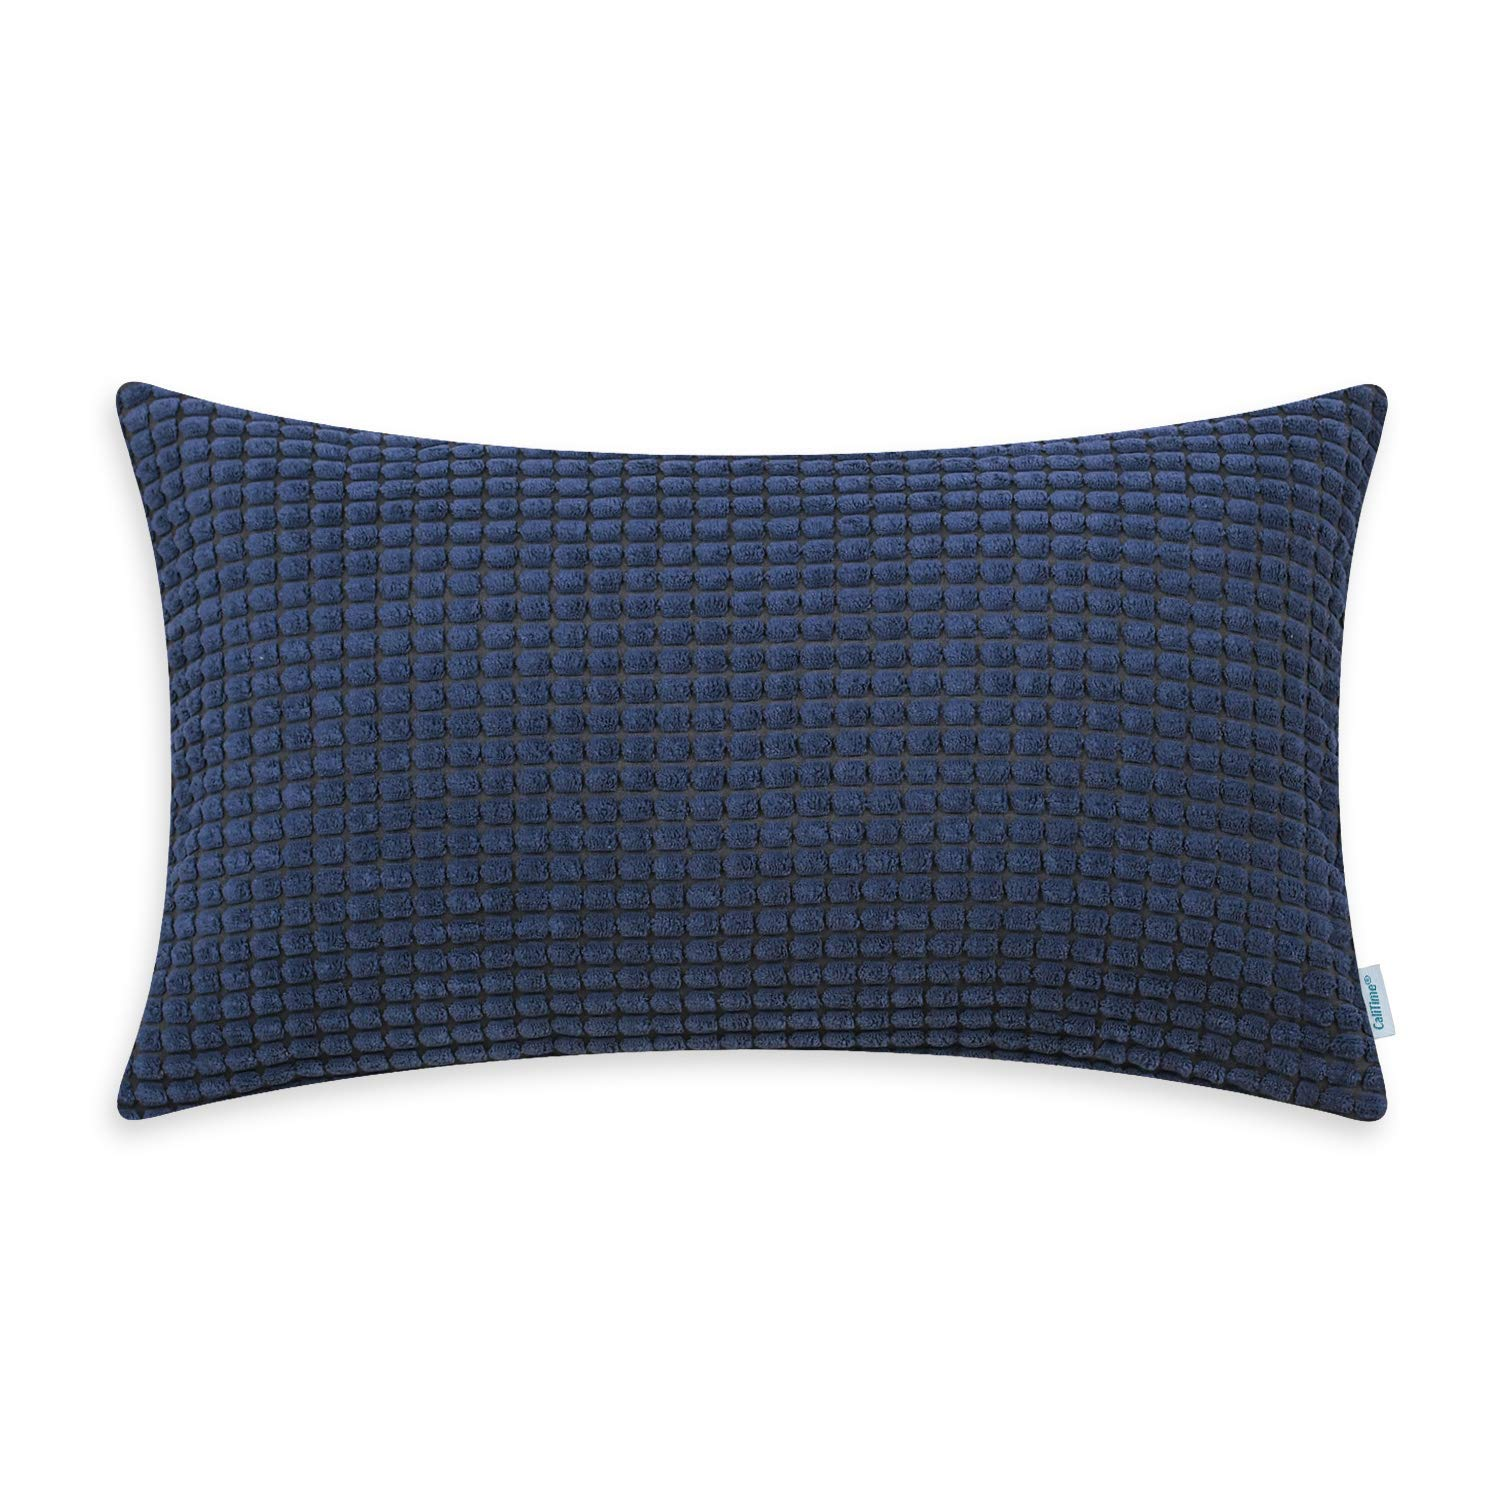 CaliTime Cozy Bolster Pillow Cover Case for Couch Sofa Bed Comfortable Supersoft Corduroy Corn Striped Both Sides 12 X 20 Inches Navy Blue